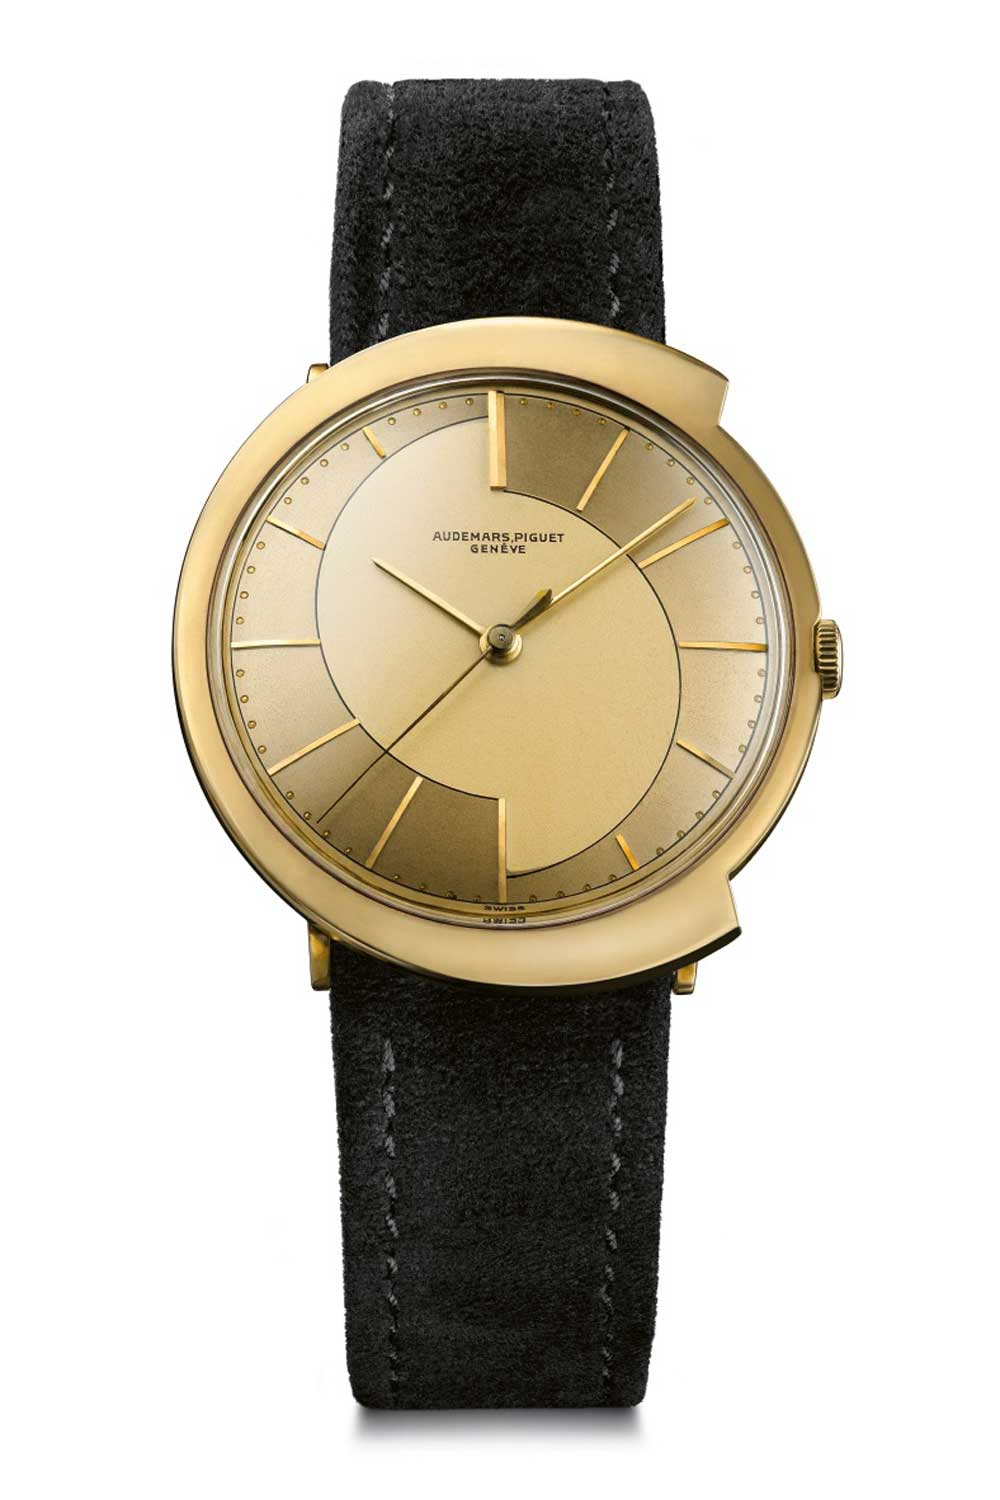 Audemars Piguet ref. 5182 followed the Japanese design principle of fukinsei with a case resembling a capital 'C' stretching from left to right to swallow up the round watch head, as if Pac-Man had discovered a sudden taste for horology.